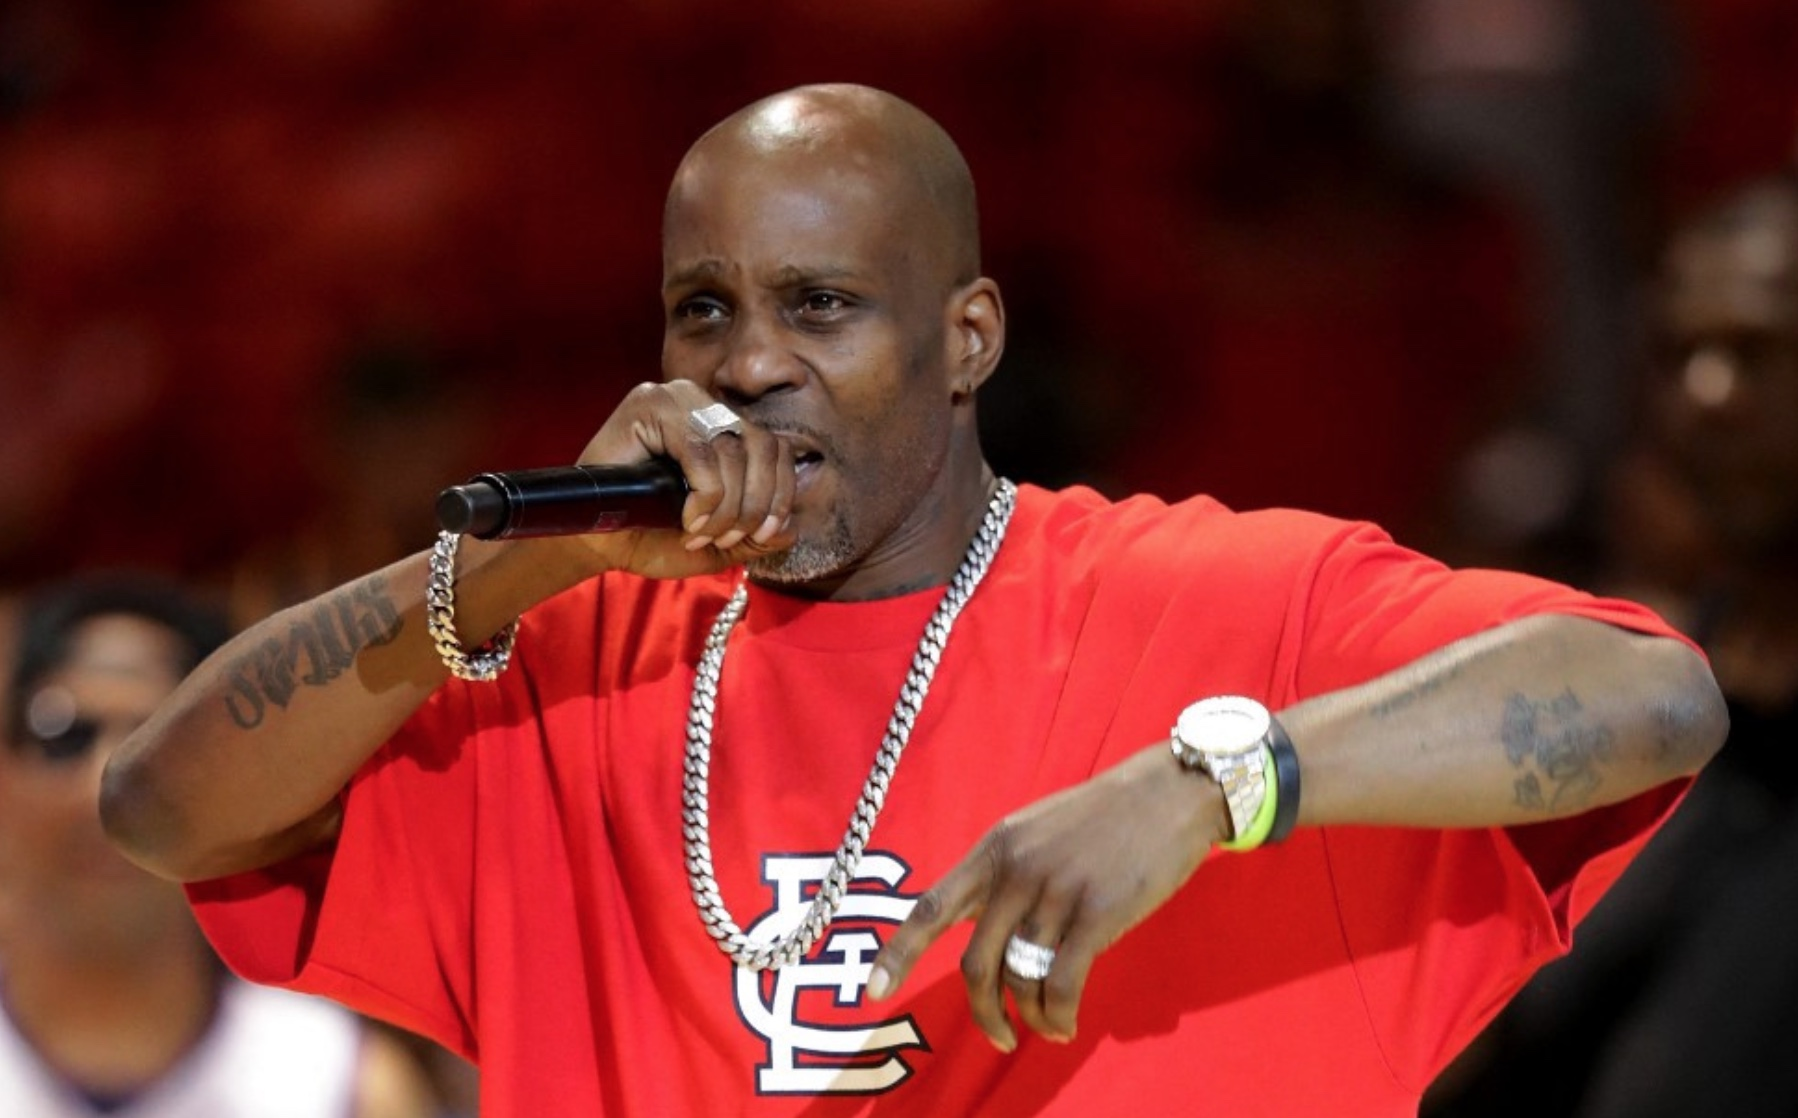 Memorial for DMX to be held at Barclays Centre only Friends and Family Invited